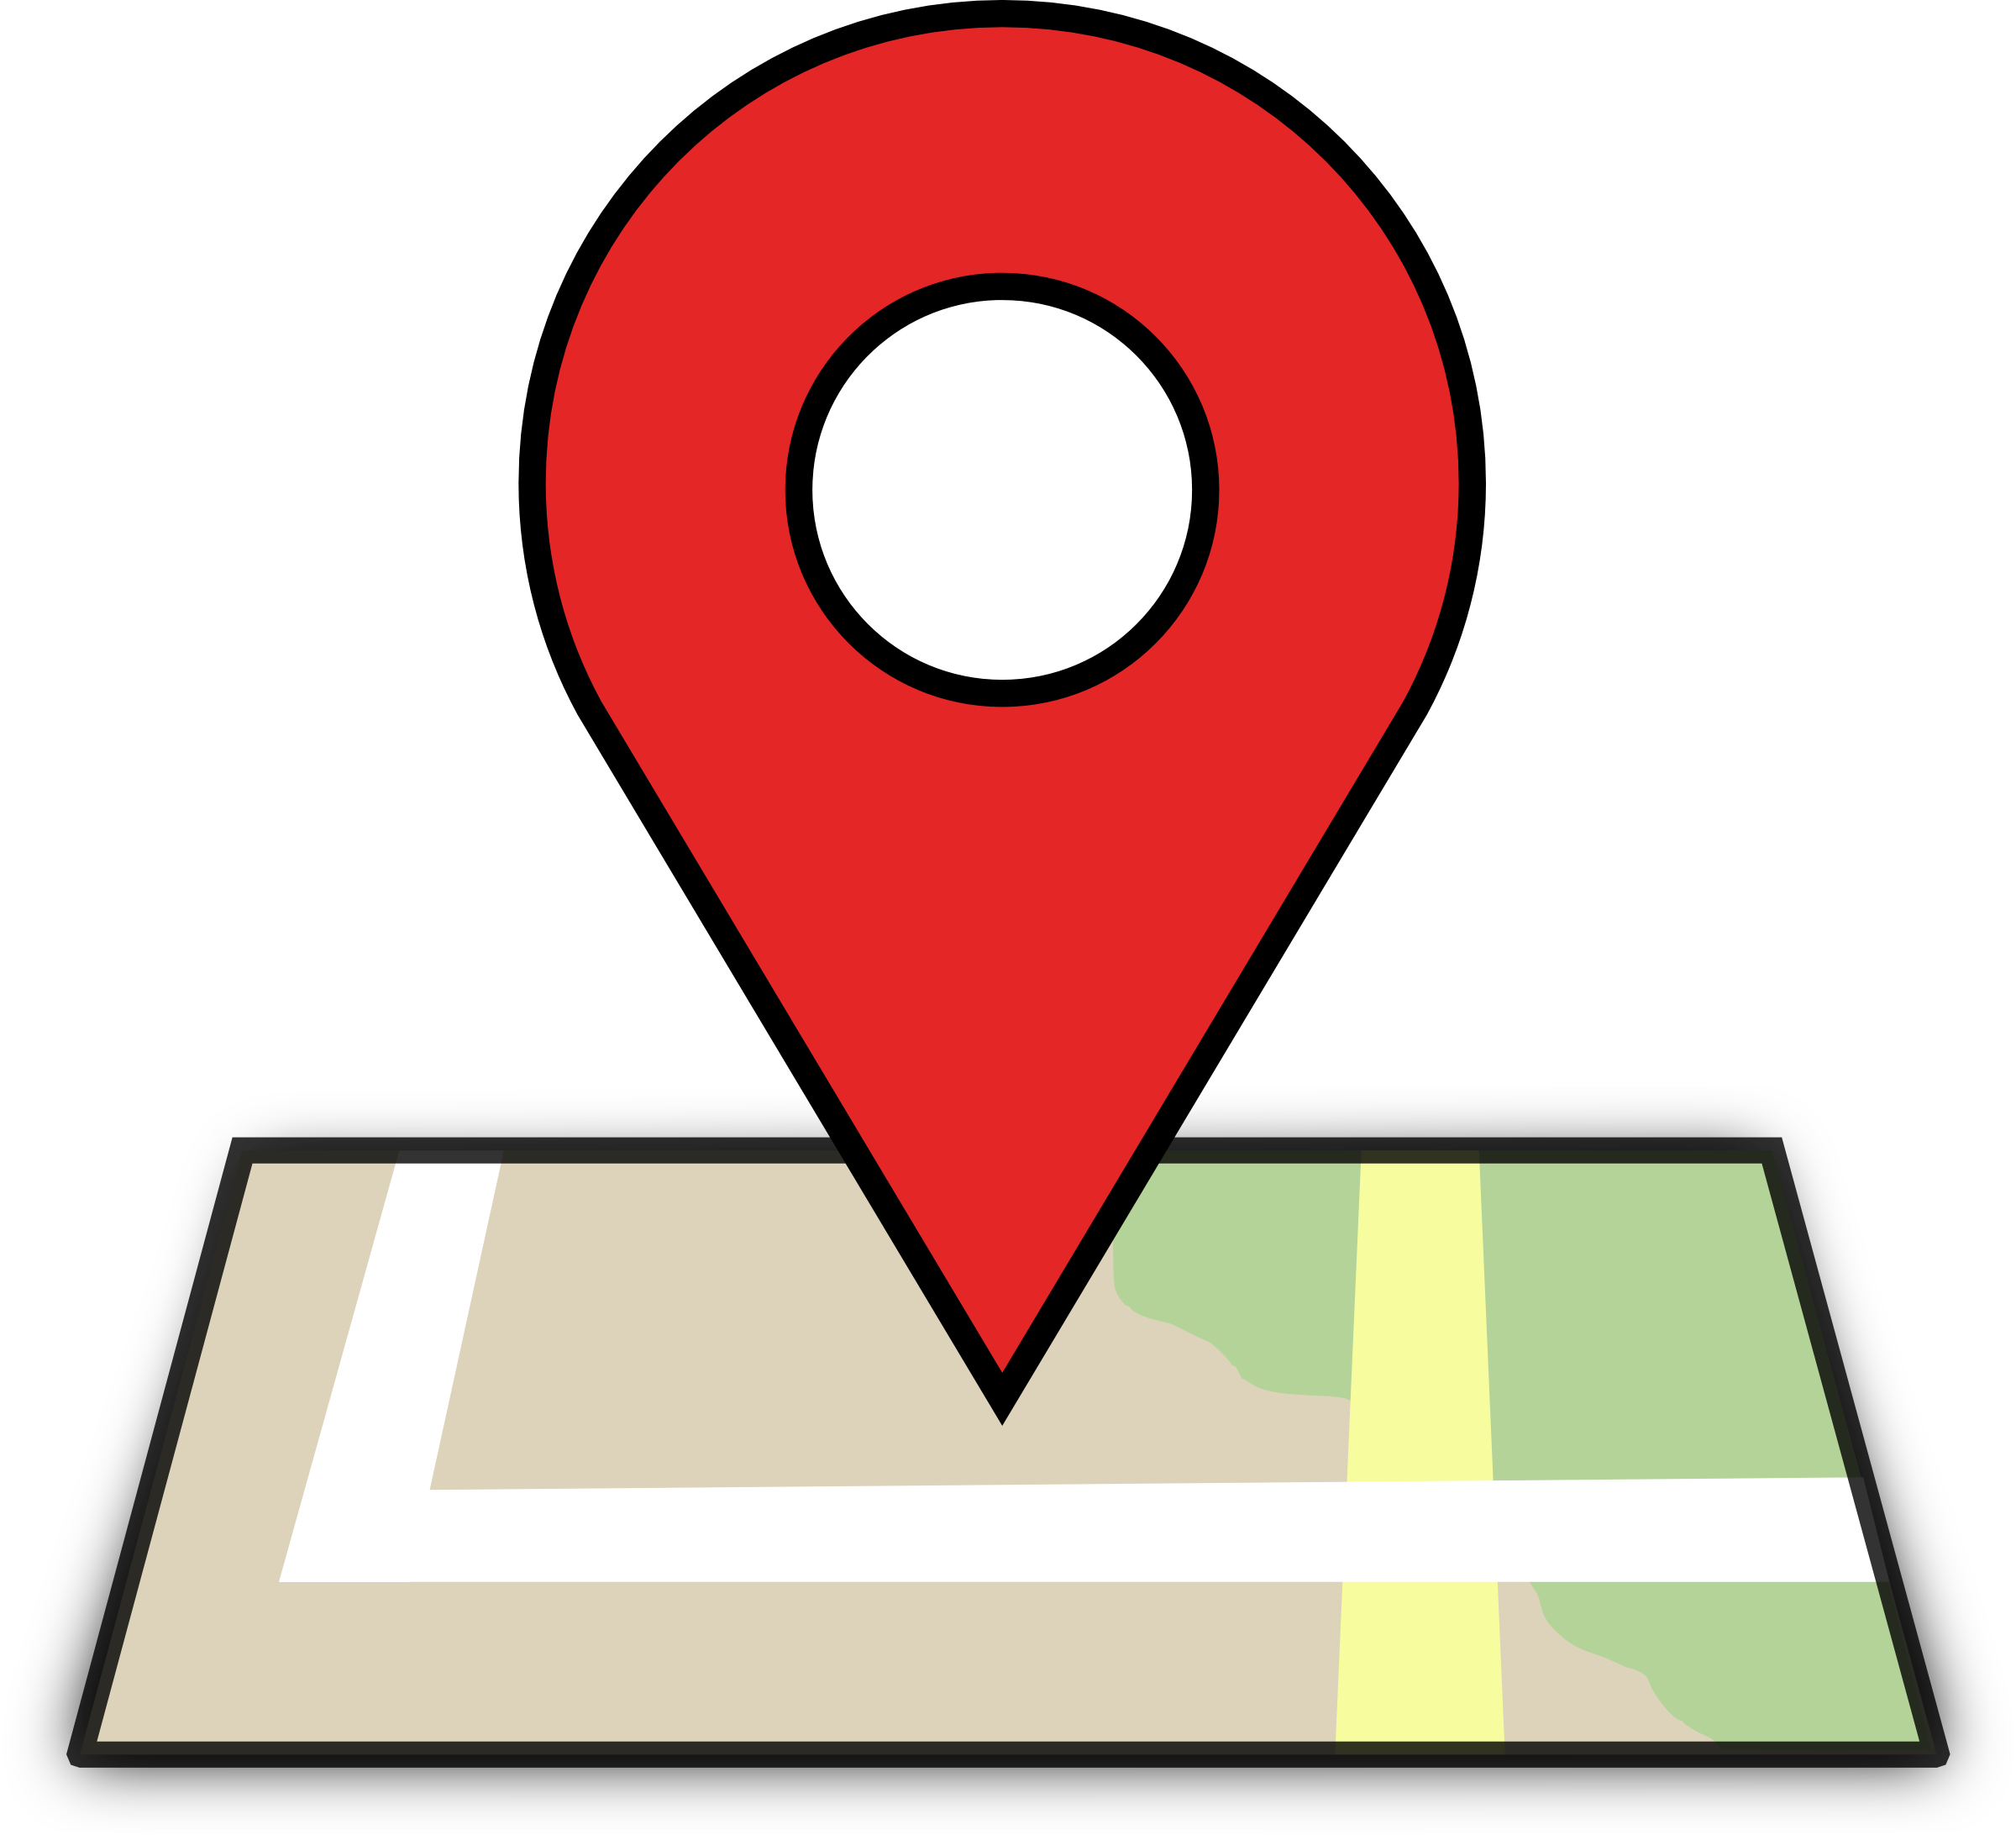 Location Icon Png | Free download best Location Icon Png on